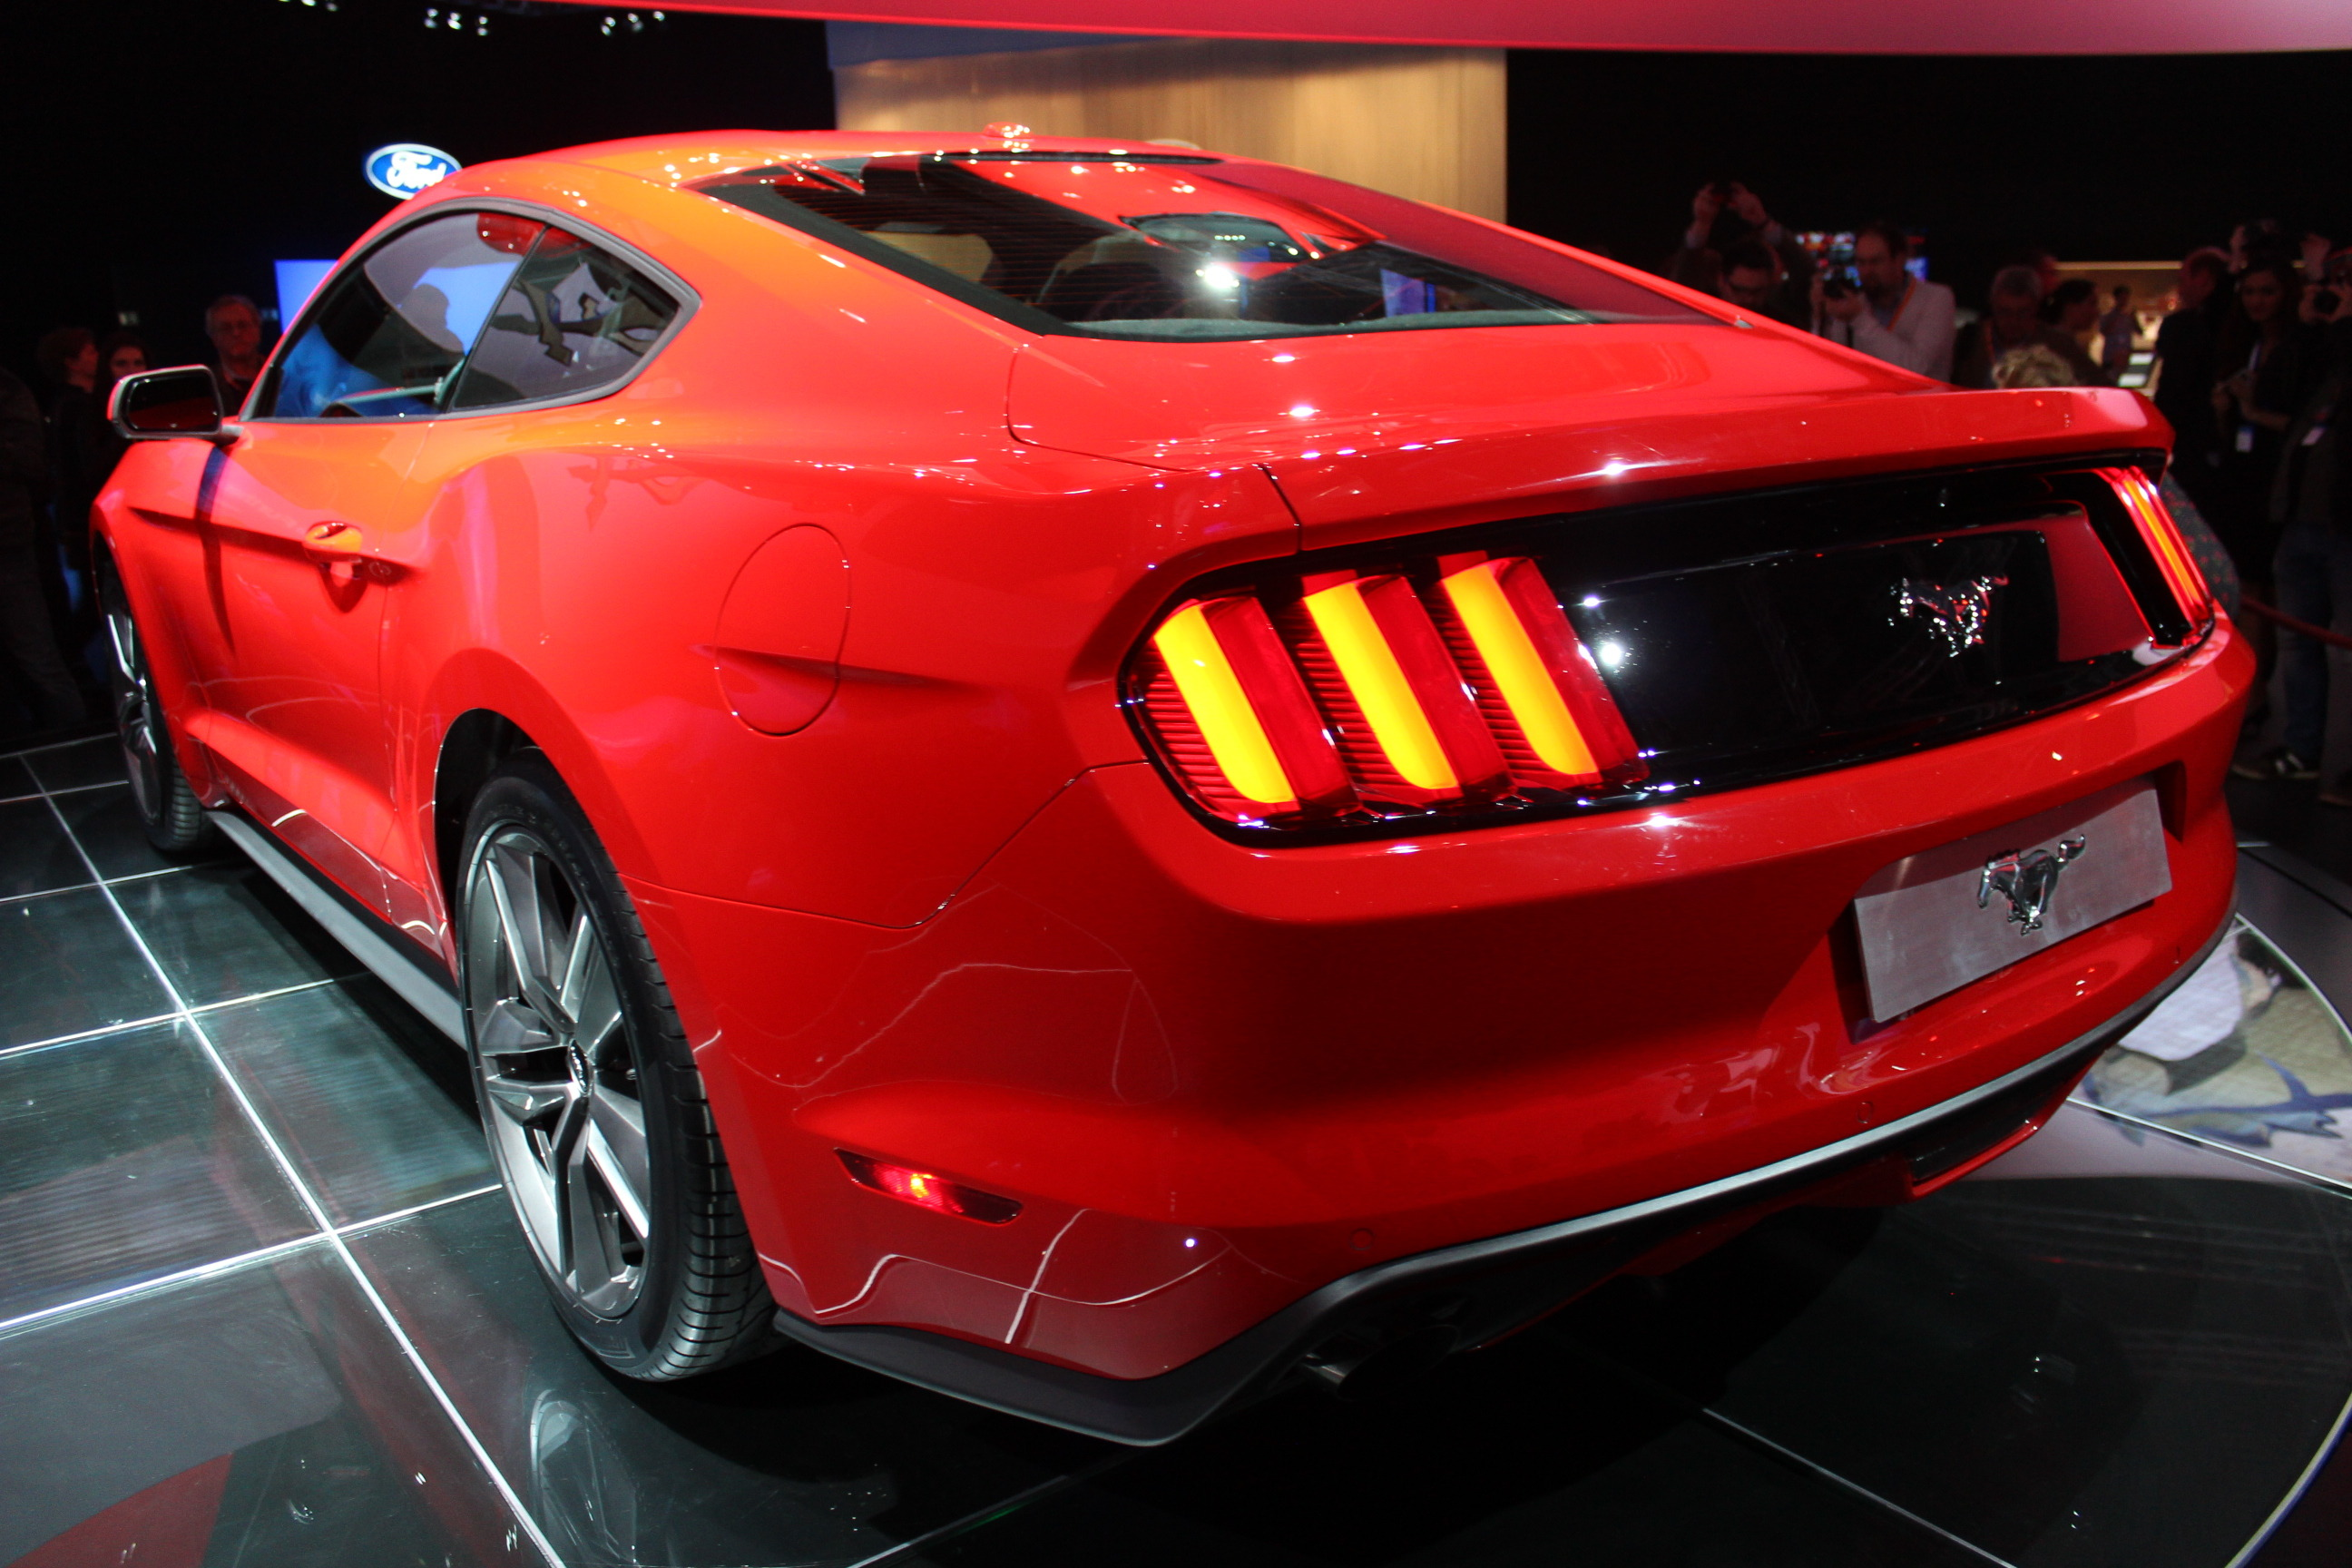 caradisiac tait la pr sentation de la nouvelle ford mustang barcelone. Black Bedroom Furniture Sets. Home Design Ideas